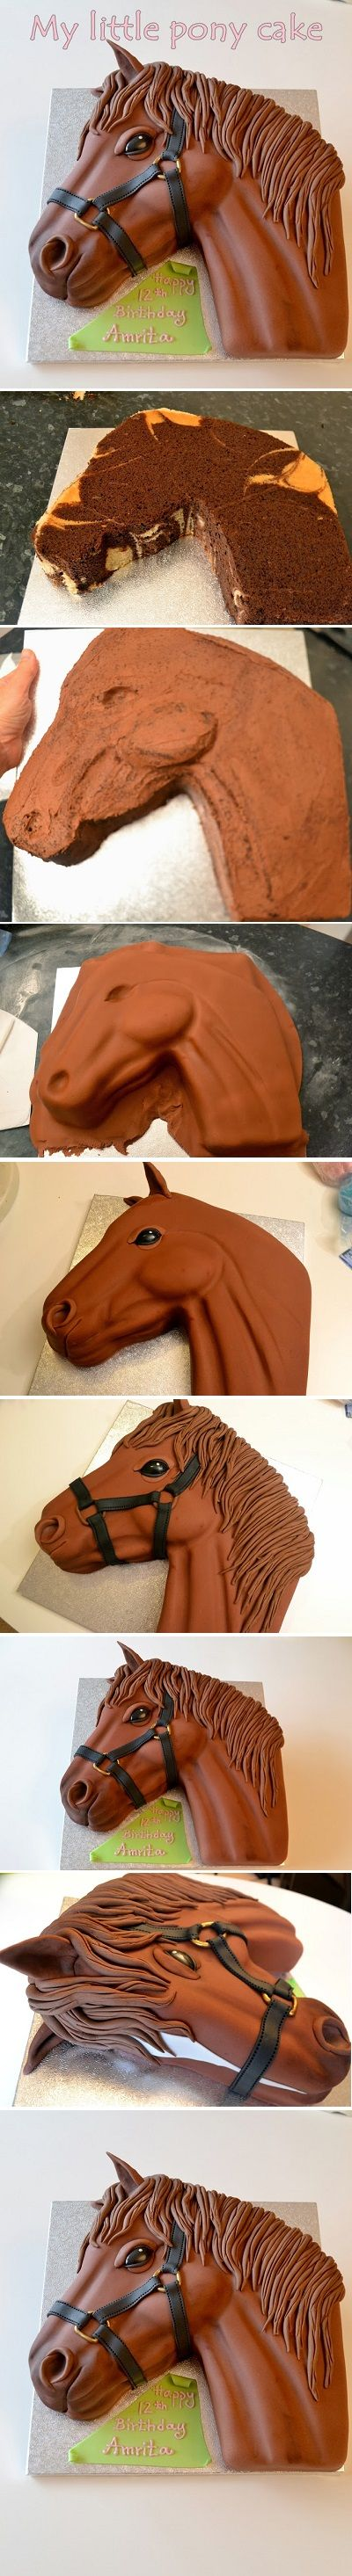 Horse cake ( I would feel bad cutting it)